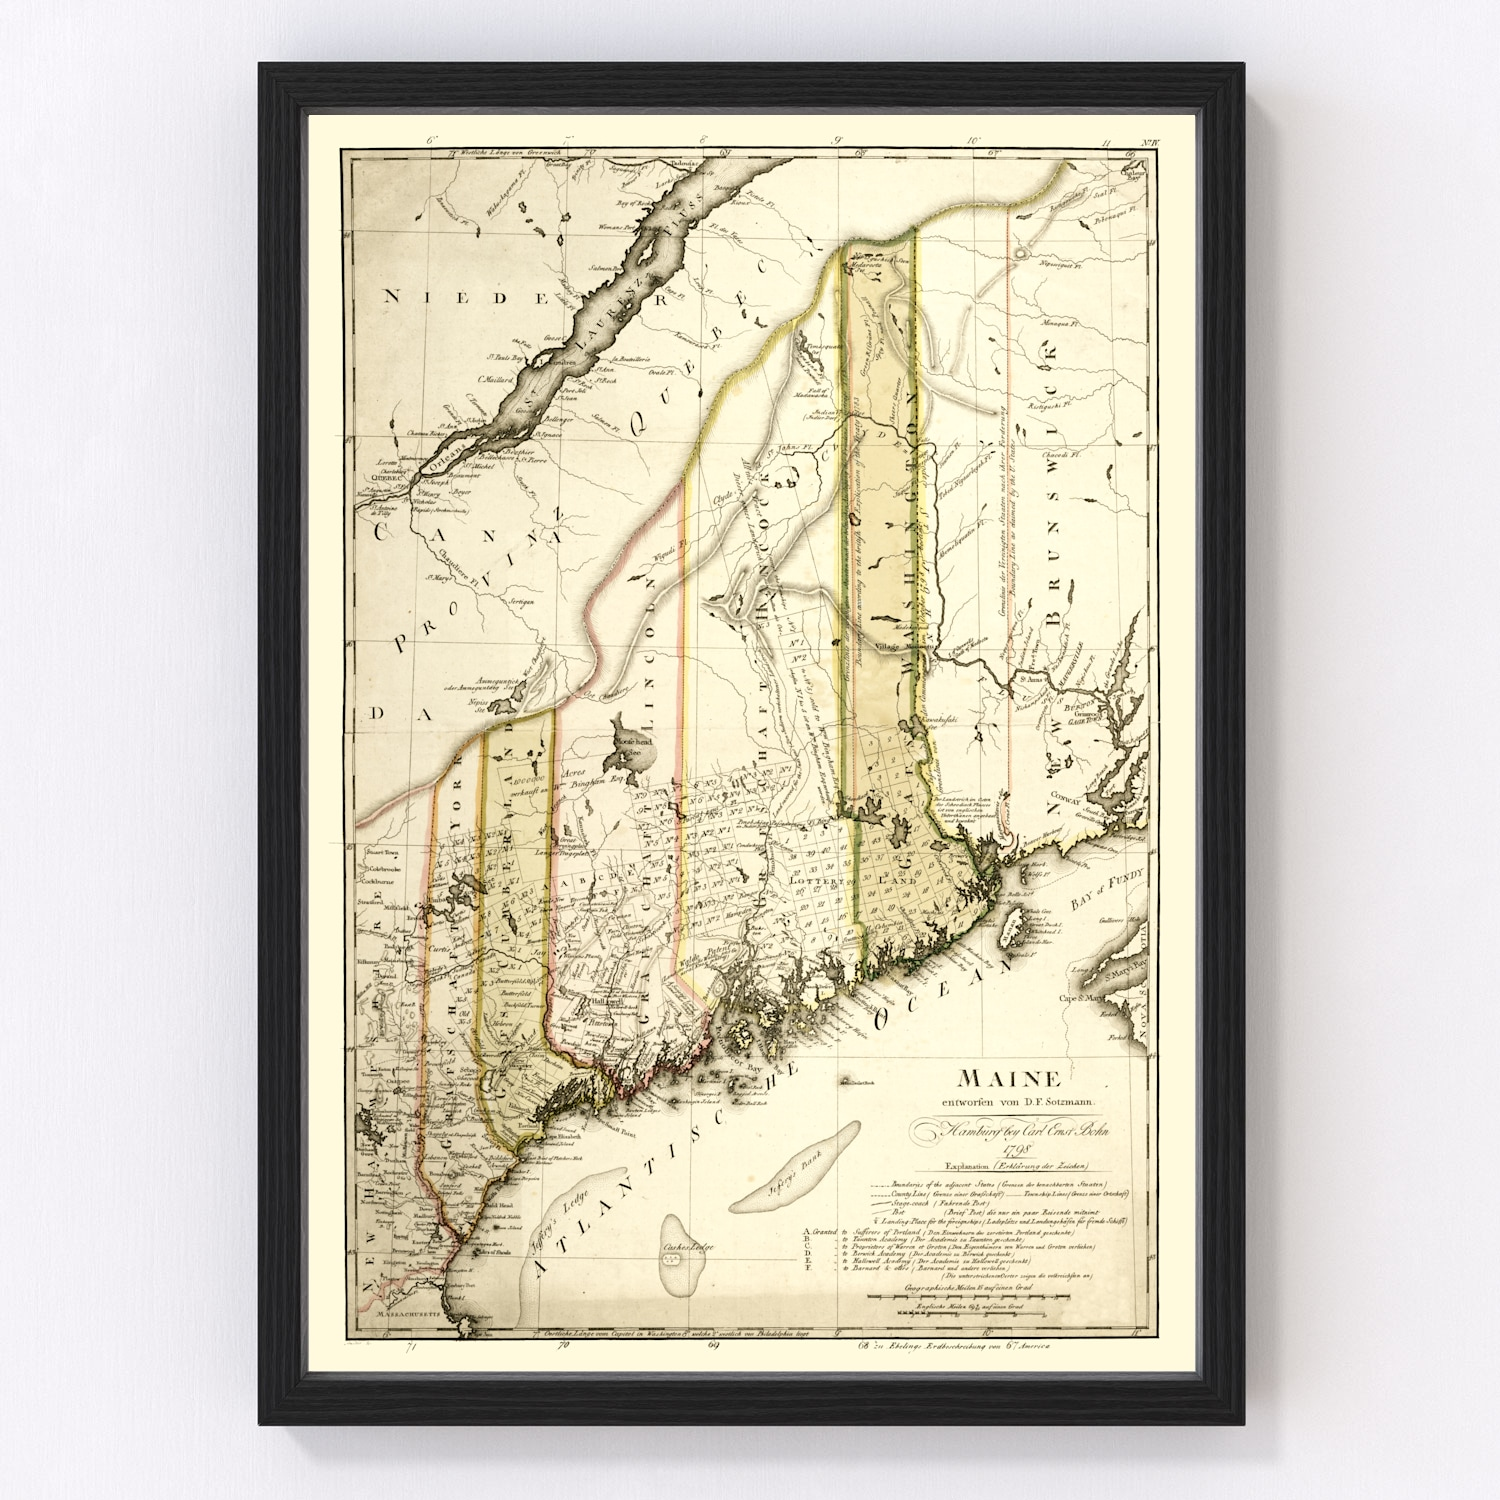 Vintage Map of Maine, 1798